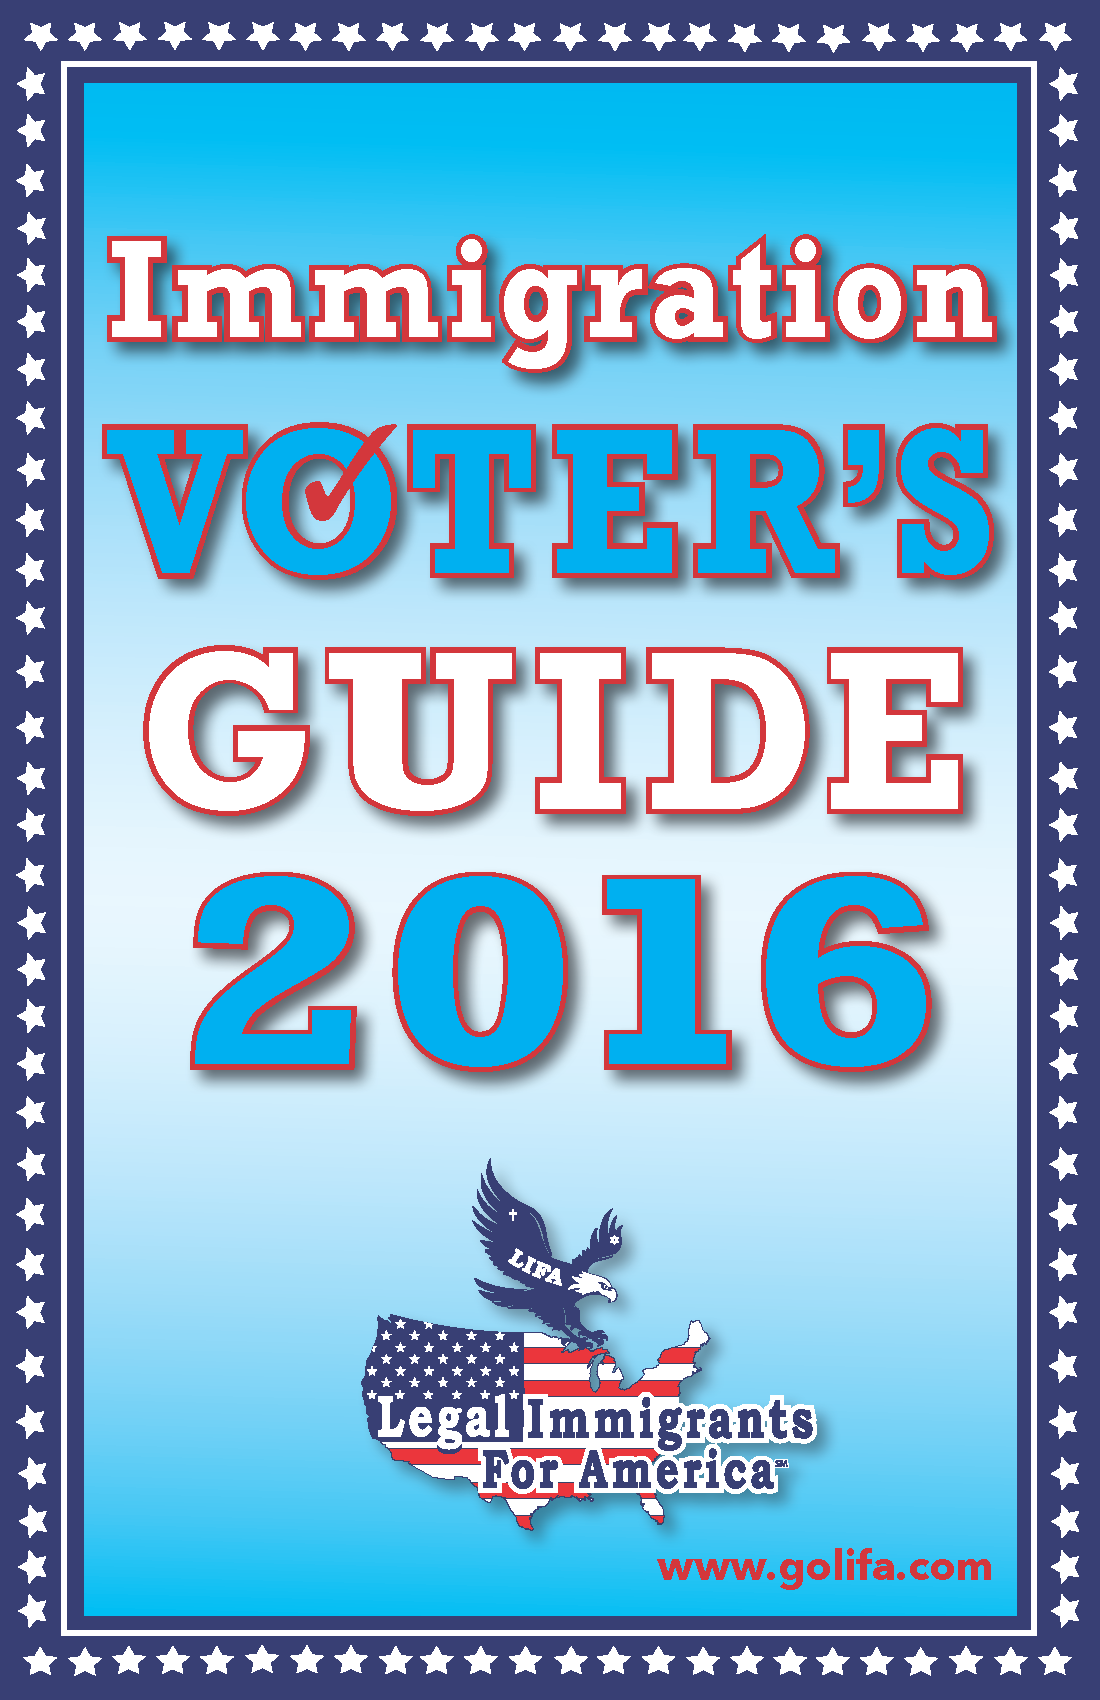 IMMIGRATION VOTER'S GUIDE 2016